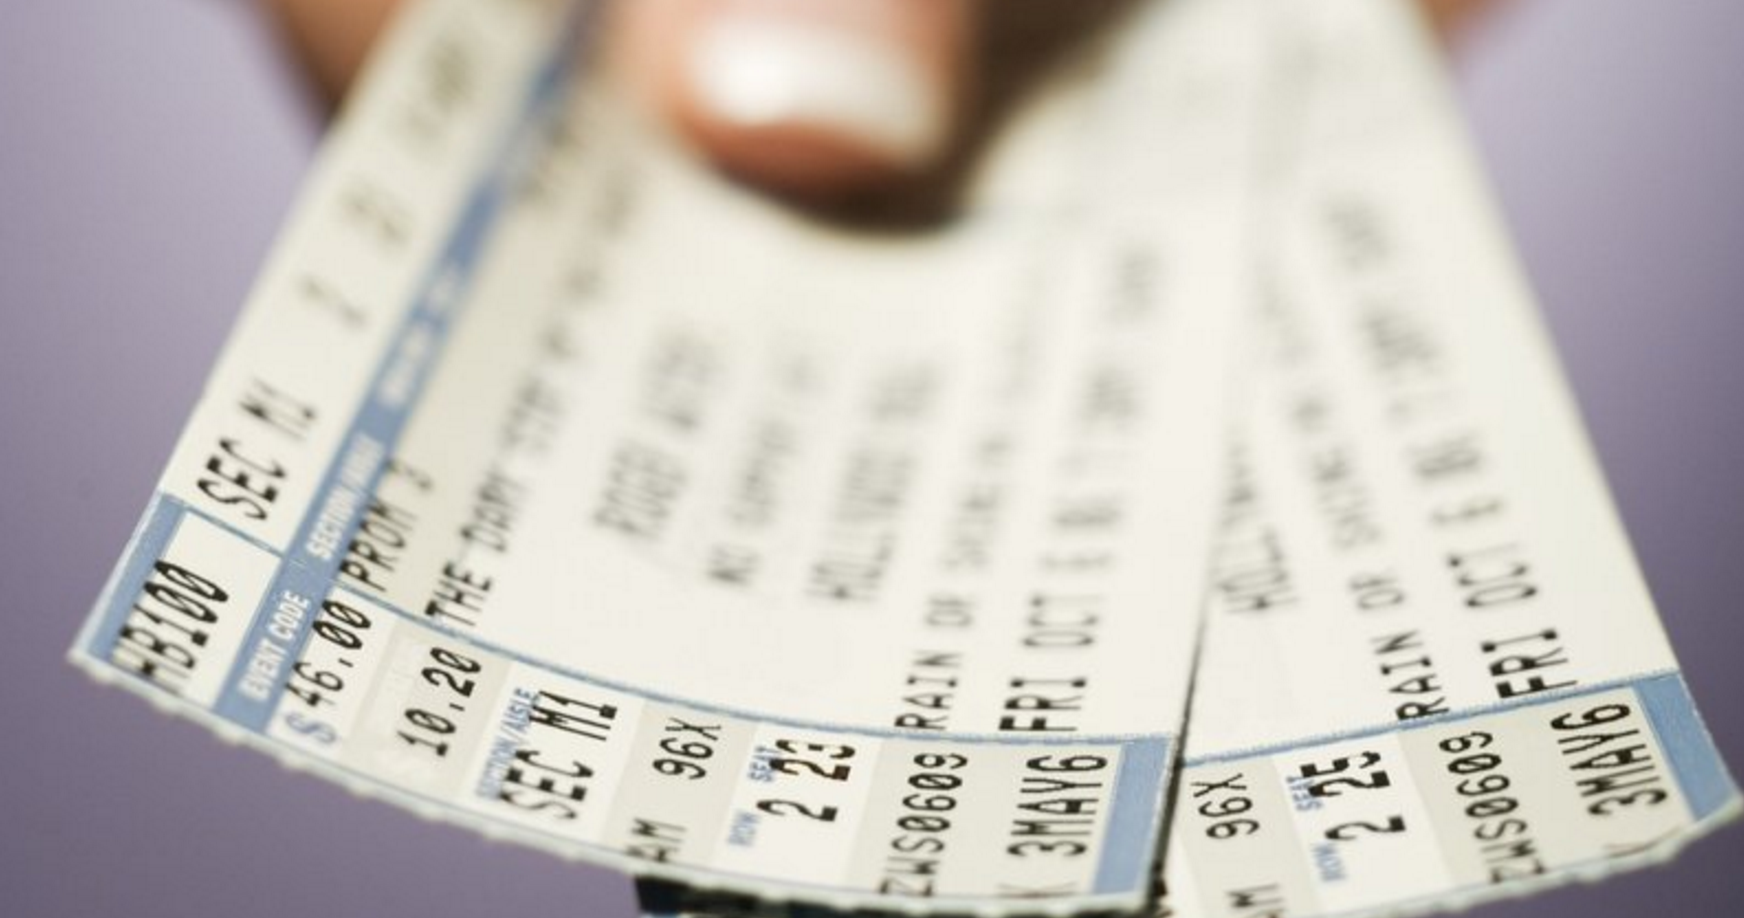 Ticketmaster launches $25 or less ticket promo